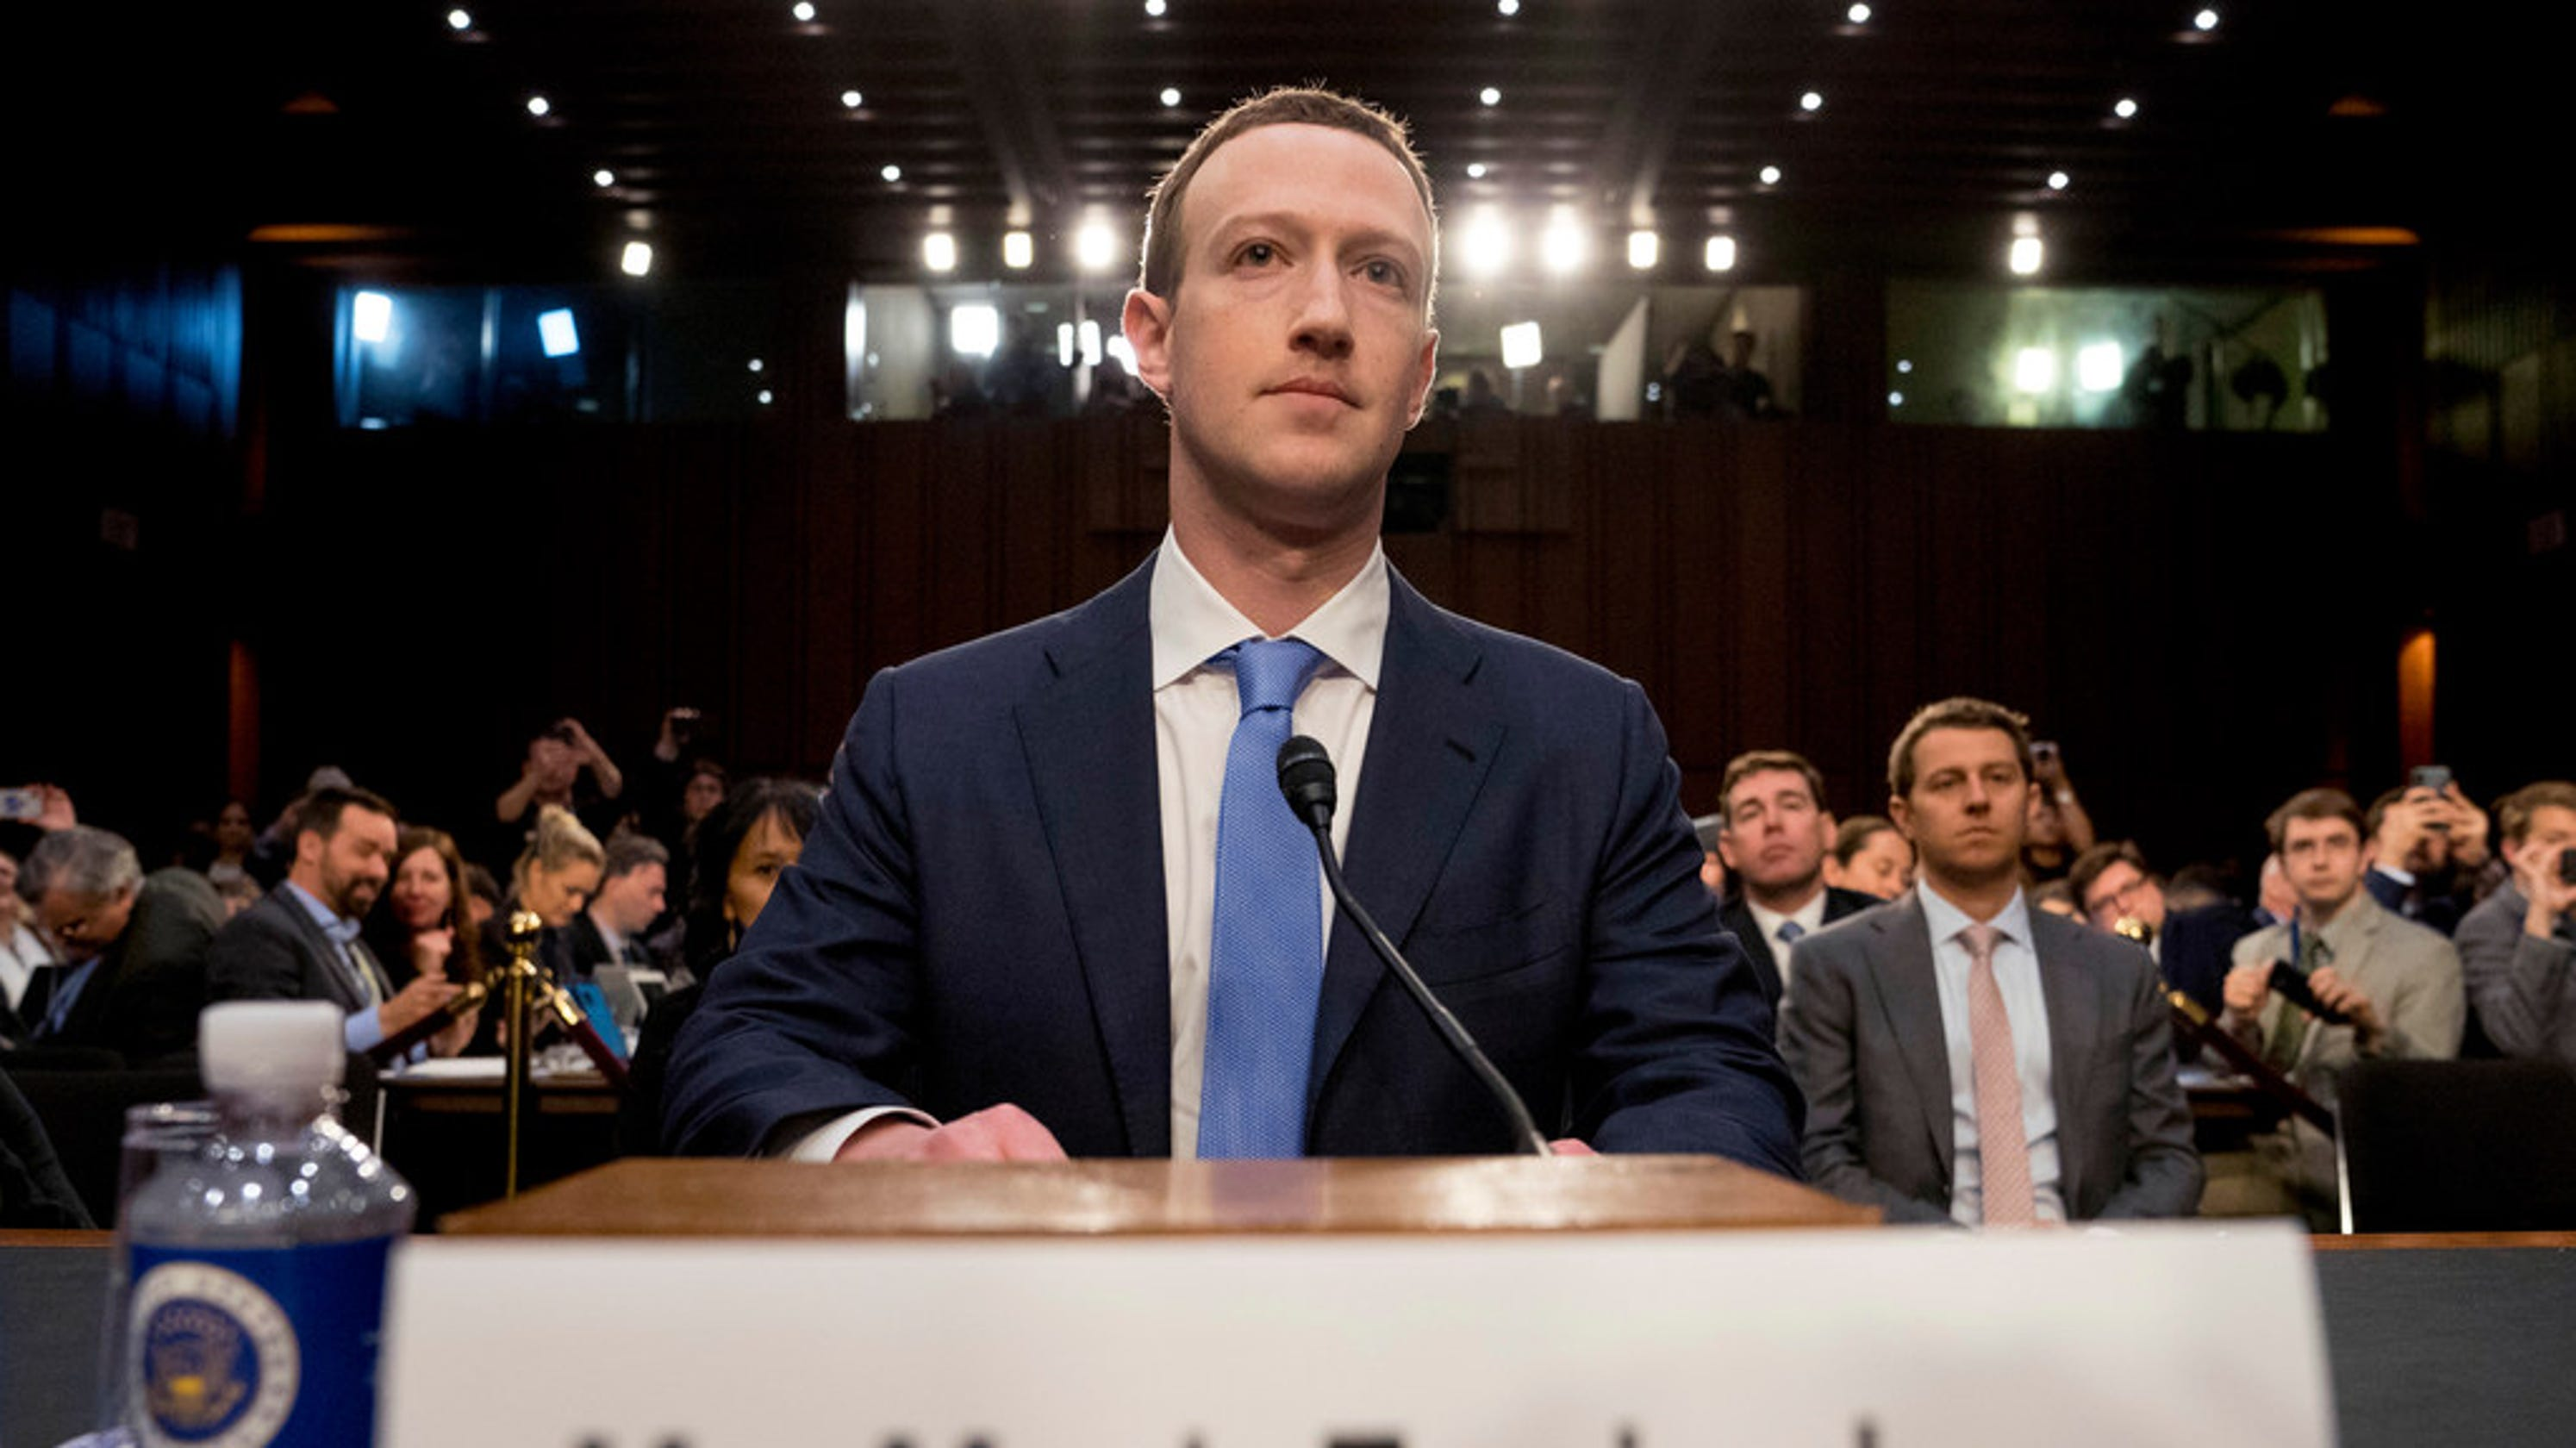 Facebook's Mark Zuckerberg could be held accountable by FTC